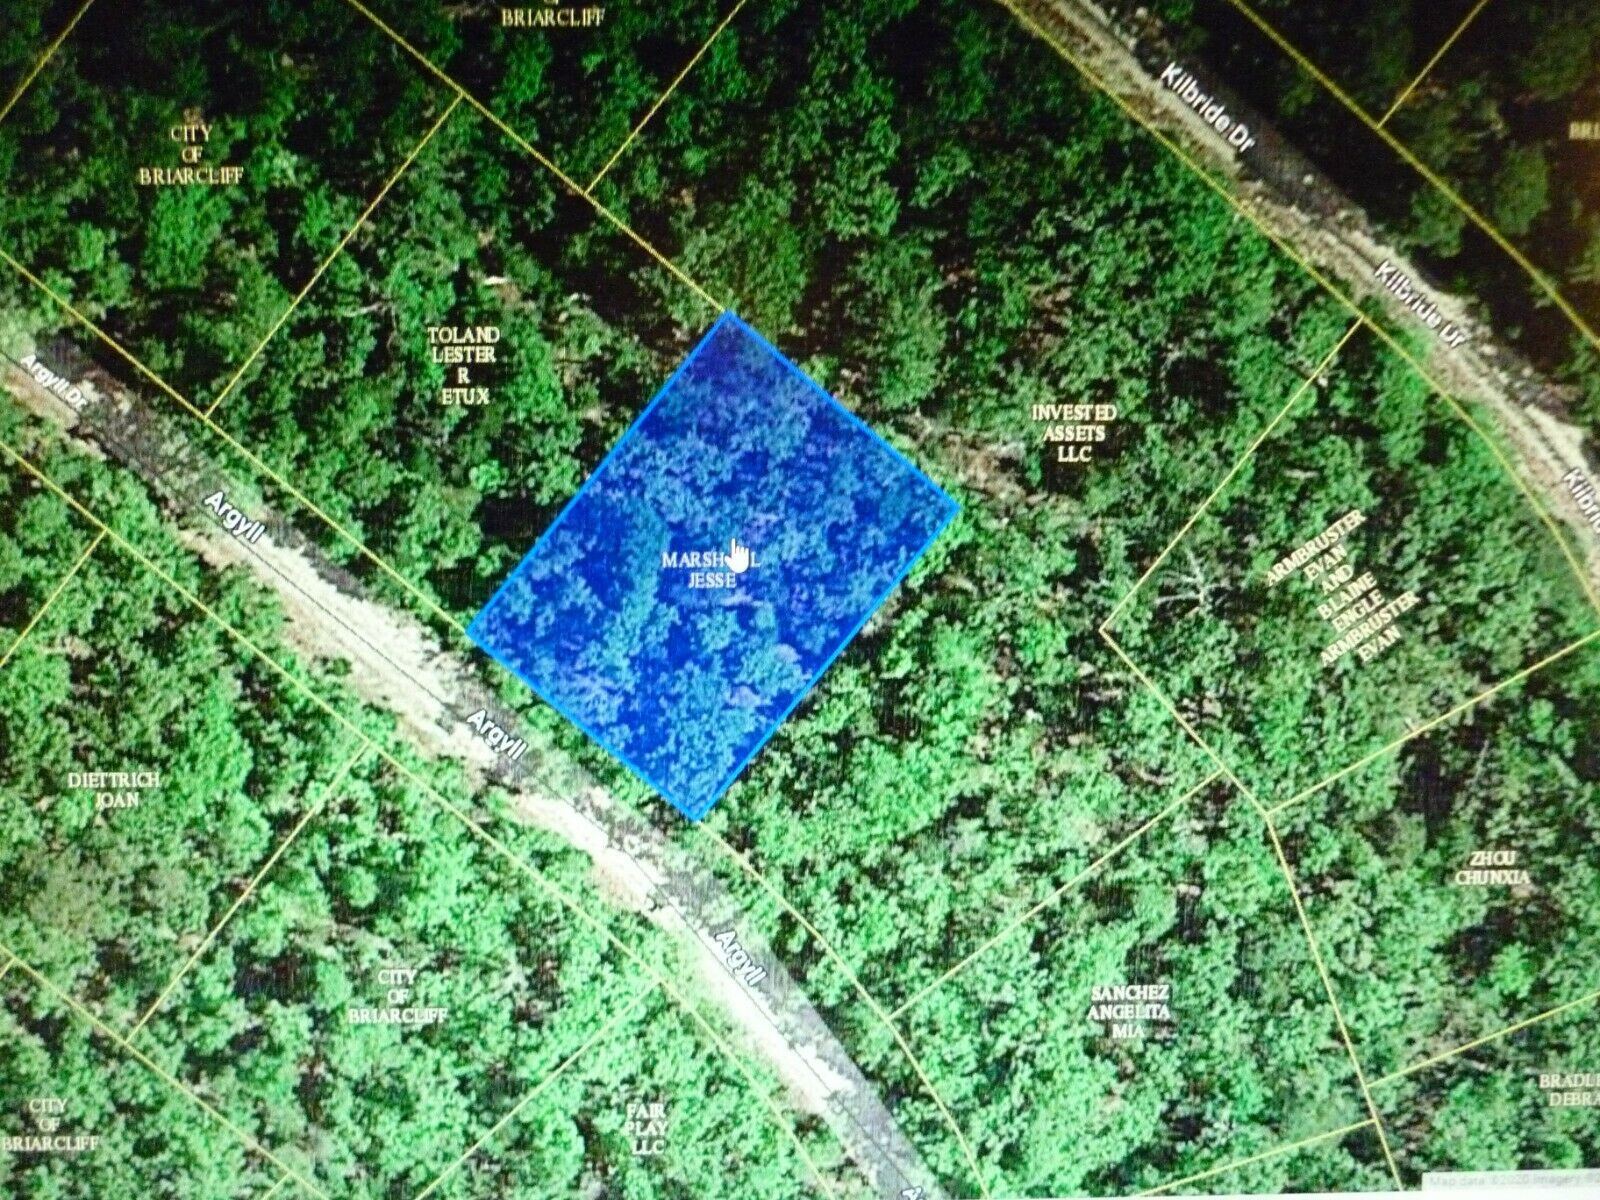 8817 Sq Ft .2024 Ac Briarcliff, AR- HALF Mile To Norfork Lake POWER CLOSE BY - $1.00